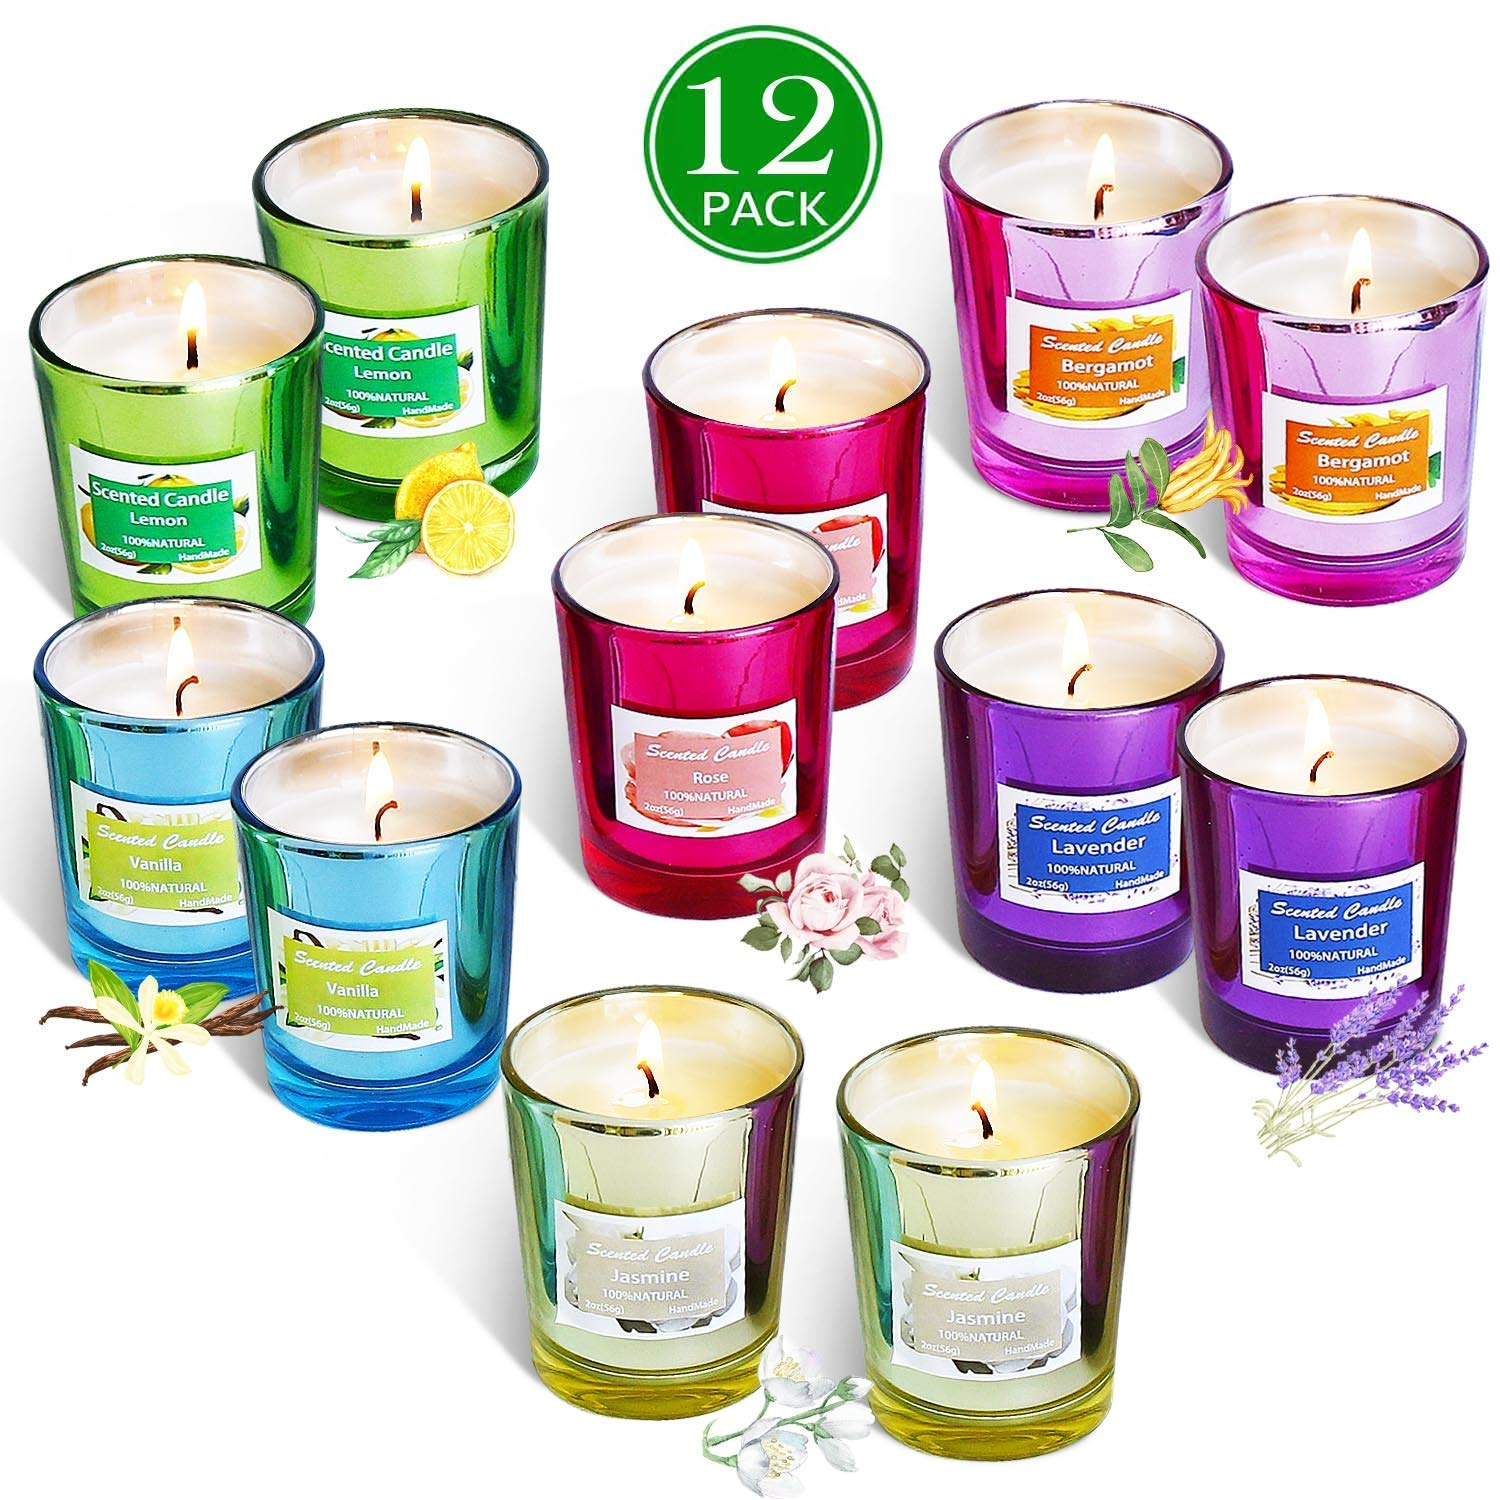 Addbeaut Scented Candles Gift Set, Natural Soy Wax 2 Oz Per Cup Portable Glass Candles Women Gift with Strongly Fragrance Essential Oils for Stress Relief and Aromatherapy - 12 Pack